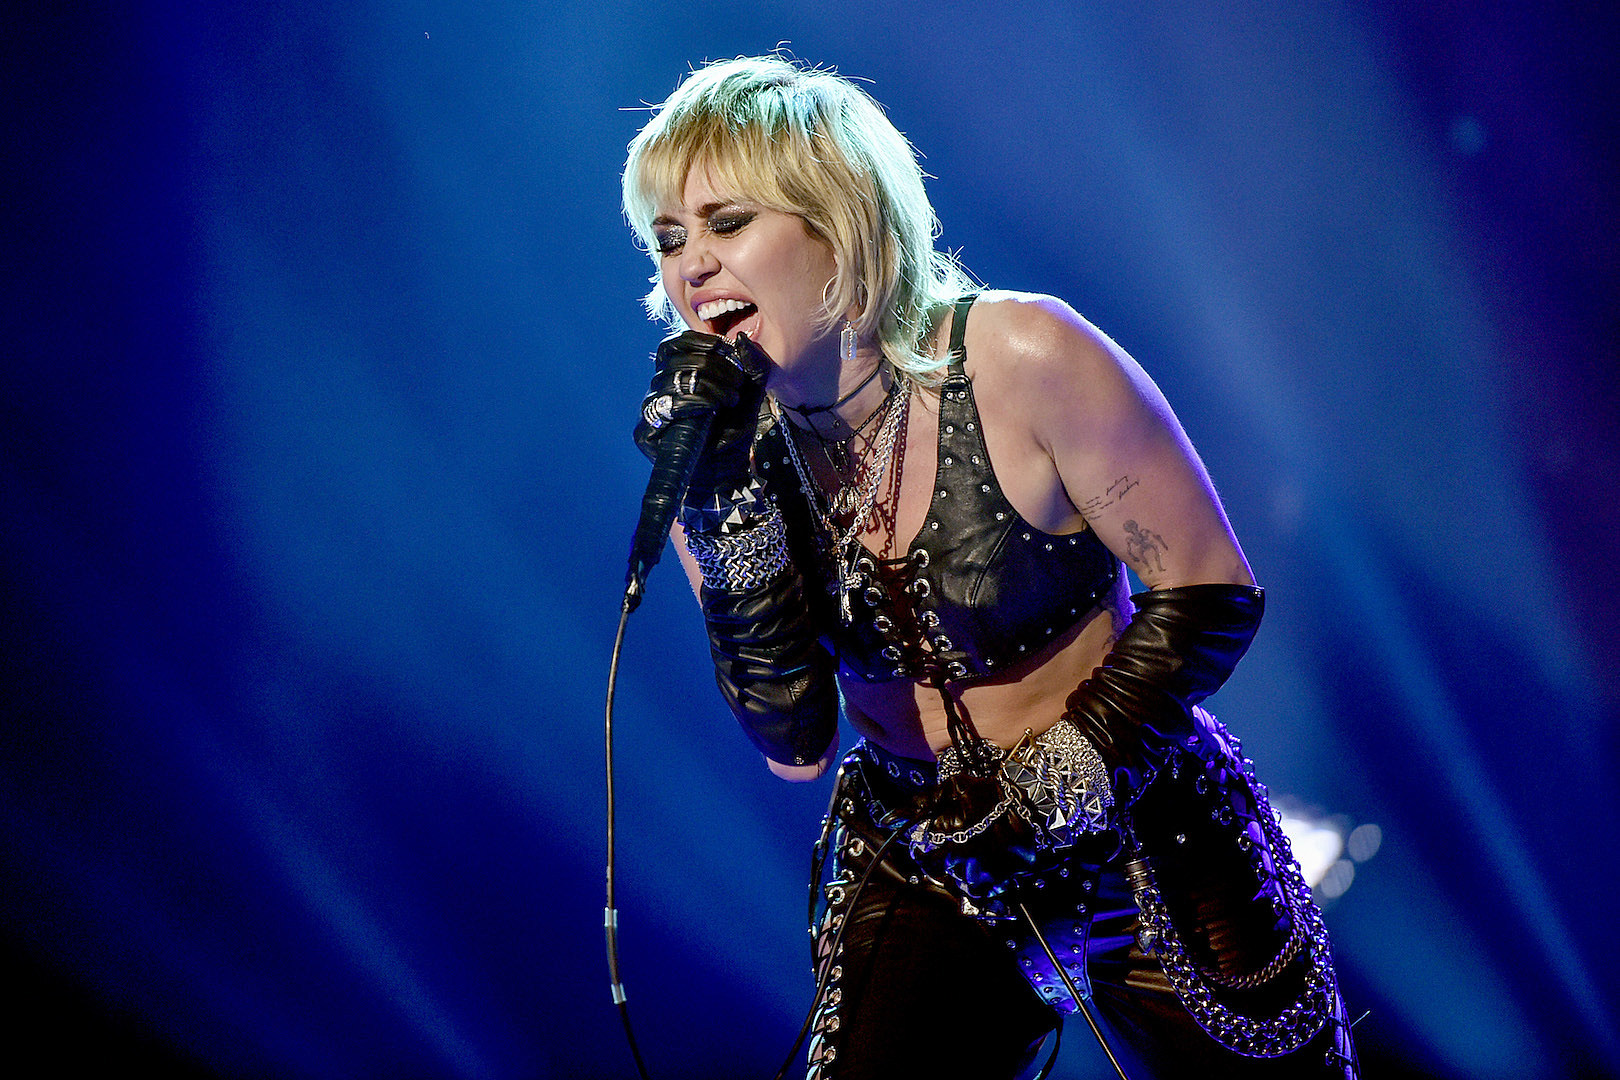 Miley Cyrus: There's Freedom in Rock That I Wish for All Genres